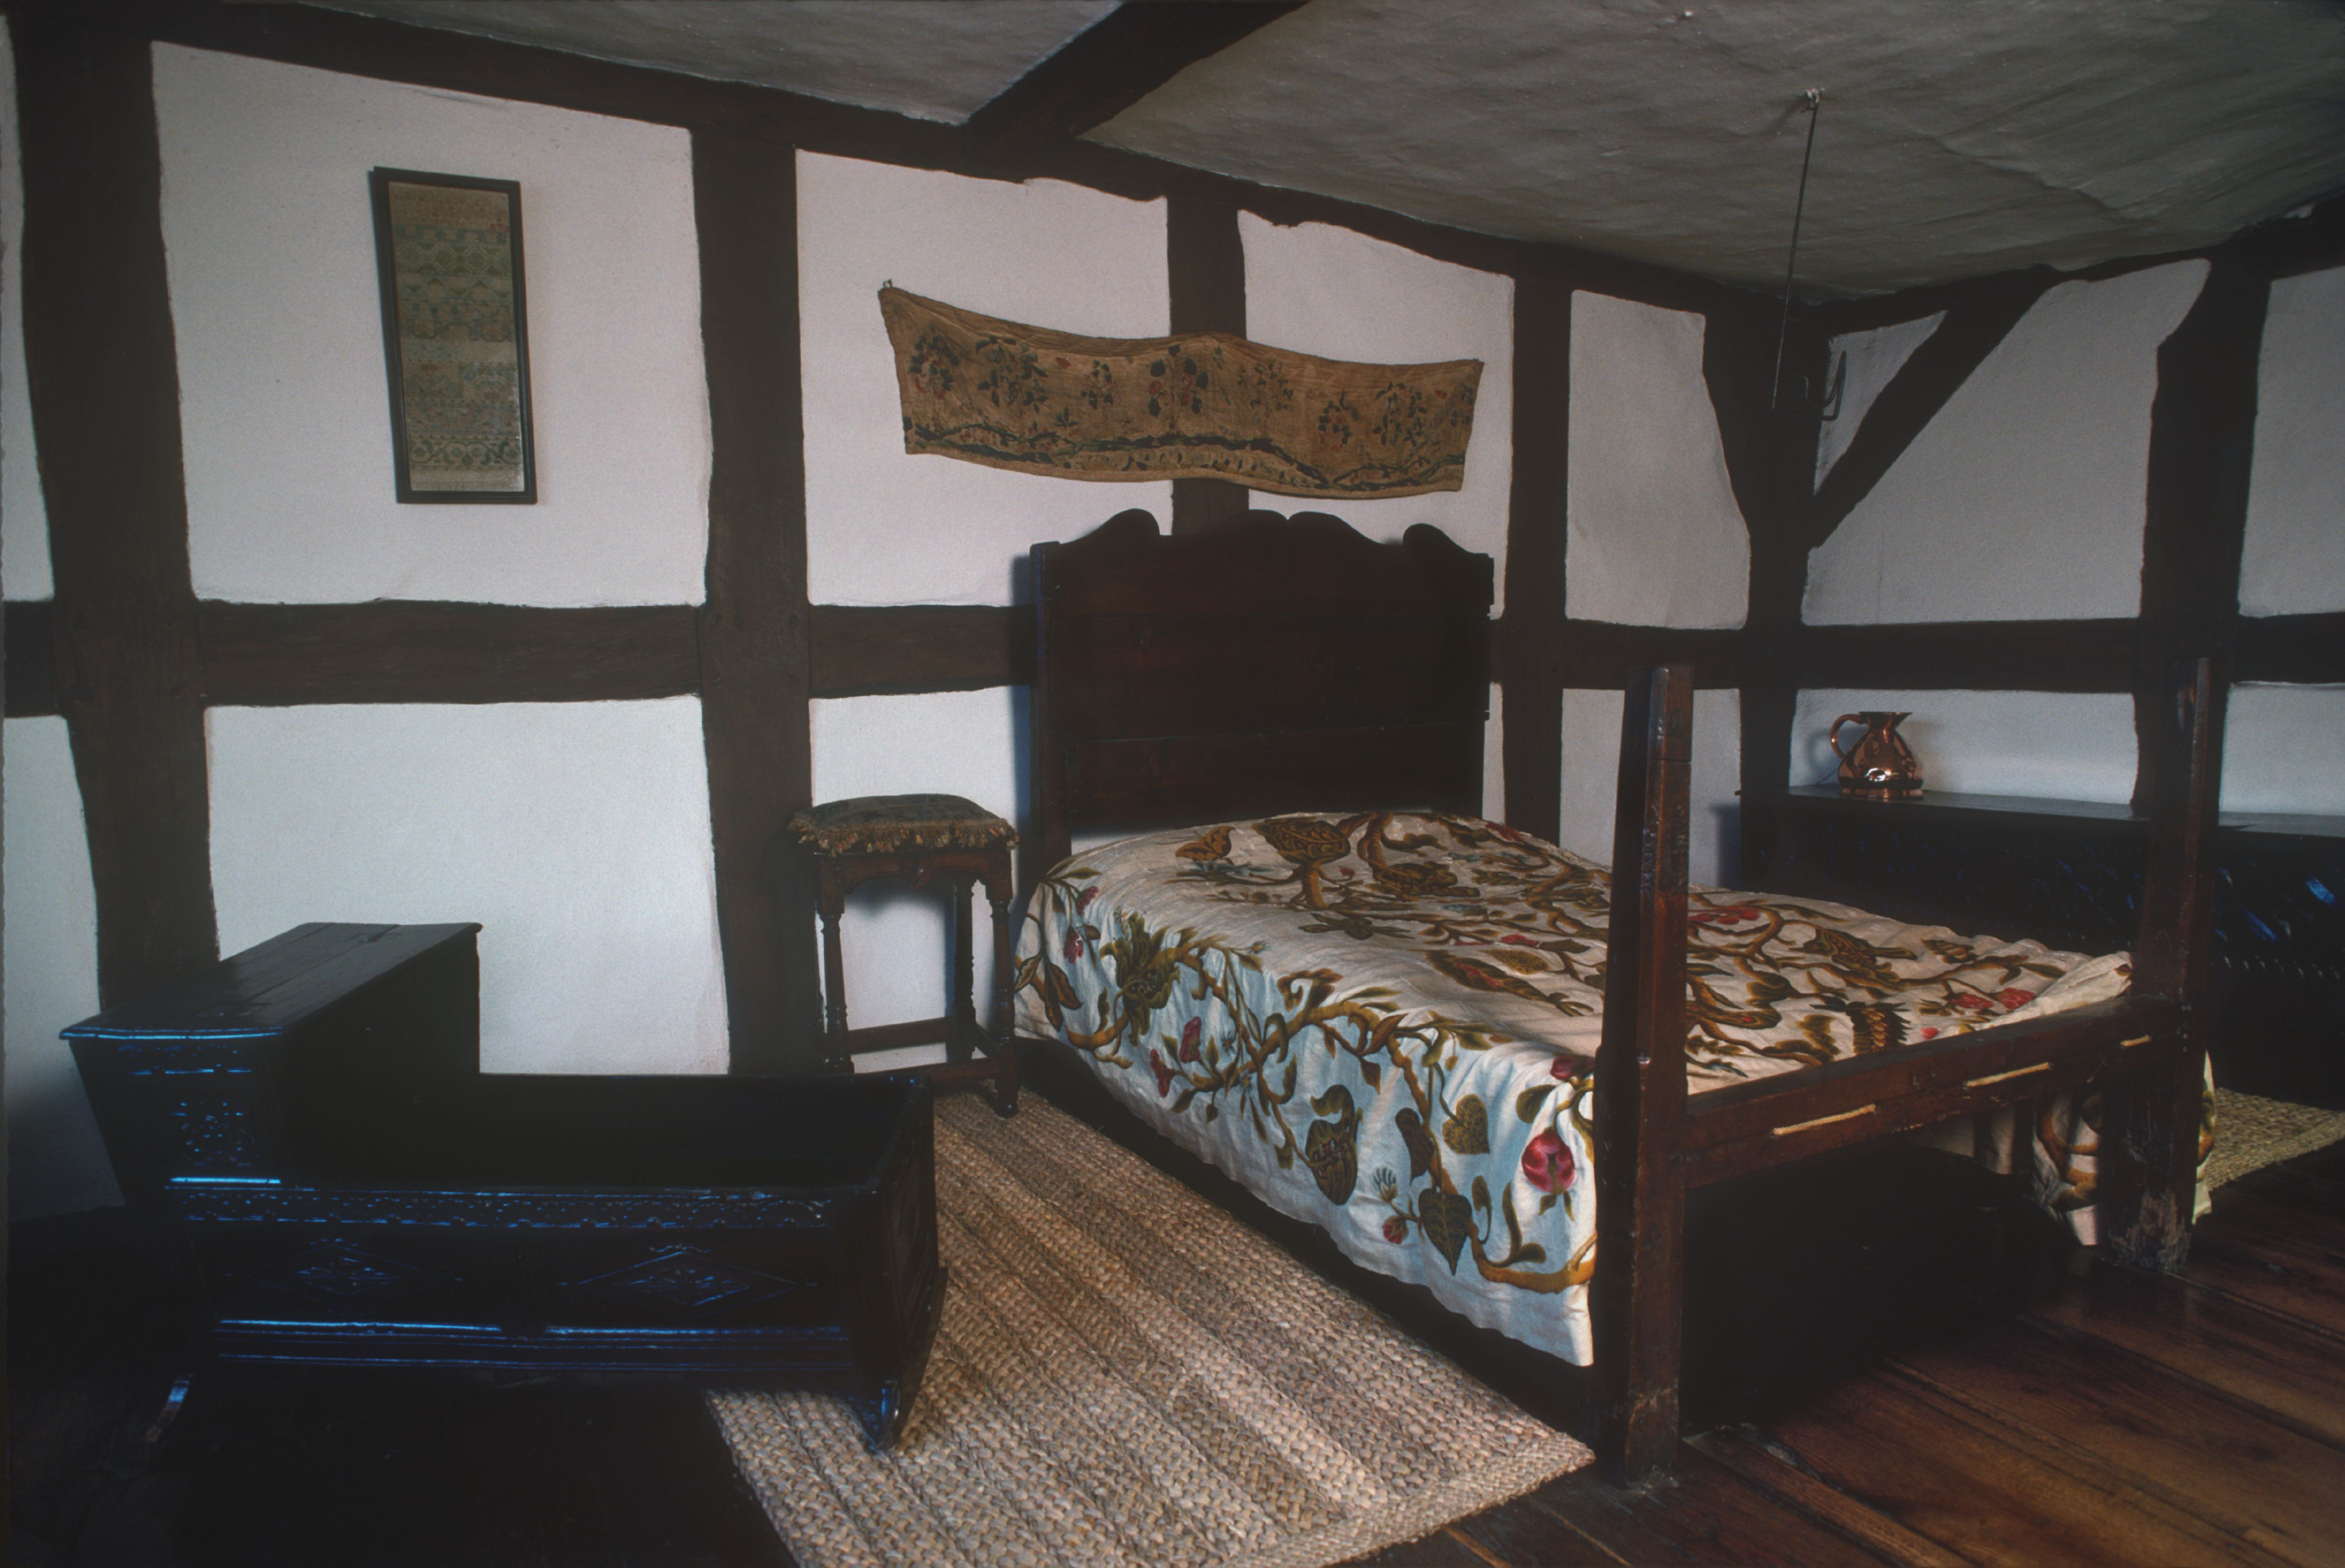 Learn About The Birth Place Of William Shakespeare